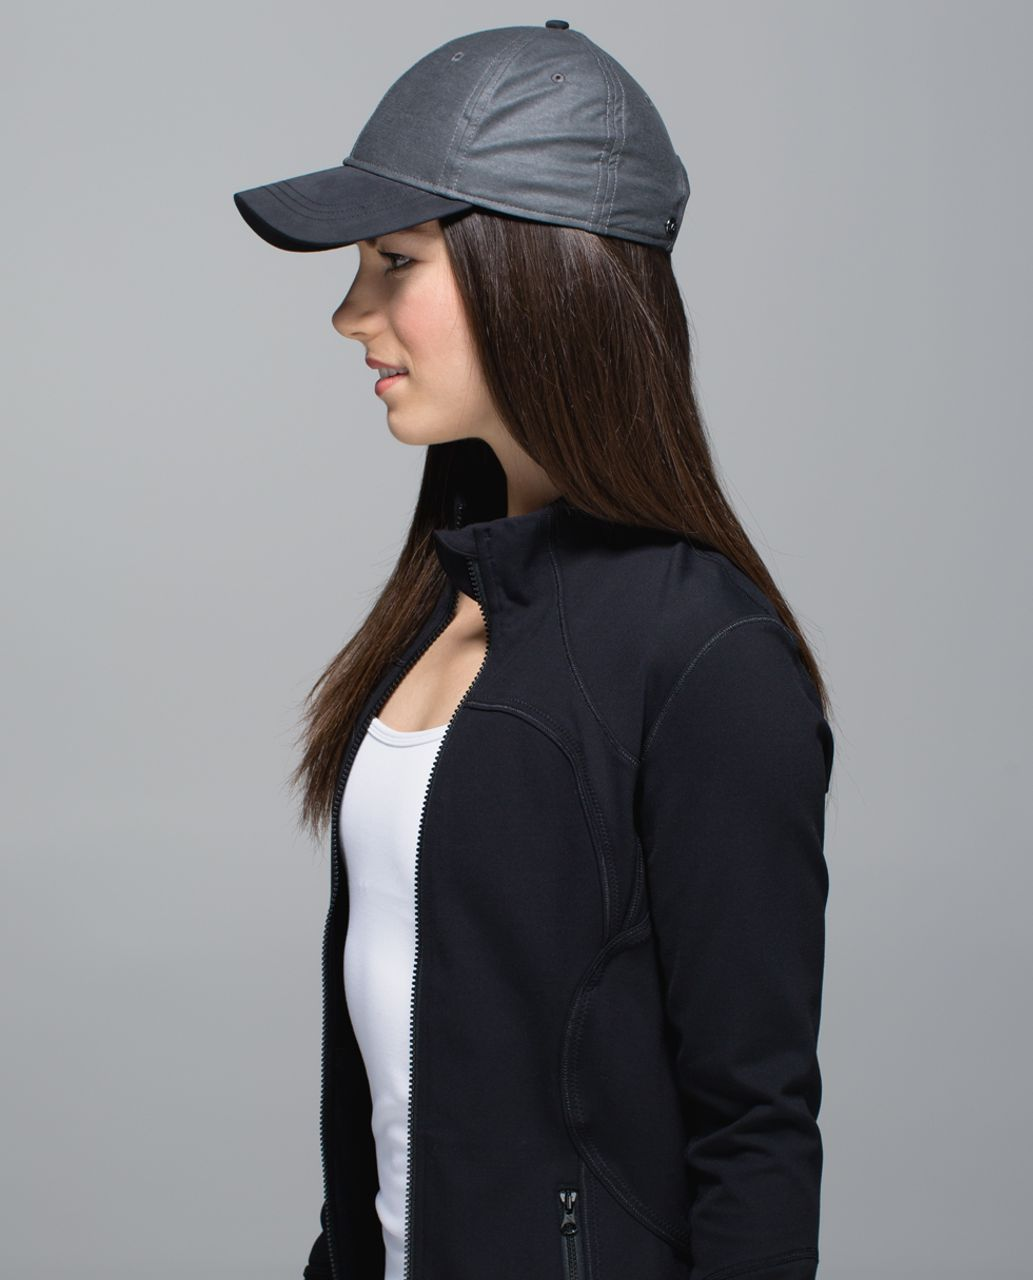 958996f3 Lululemon Baller Hat - Heathered Black / Black - lulu fanatics